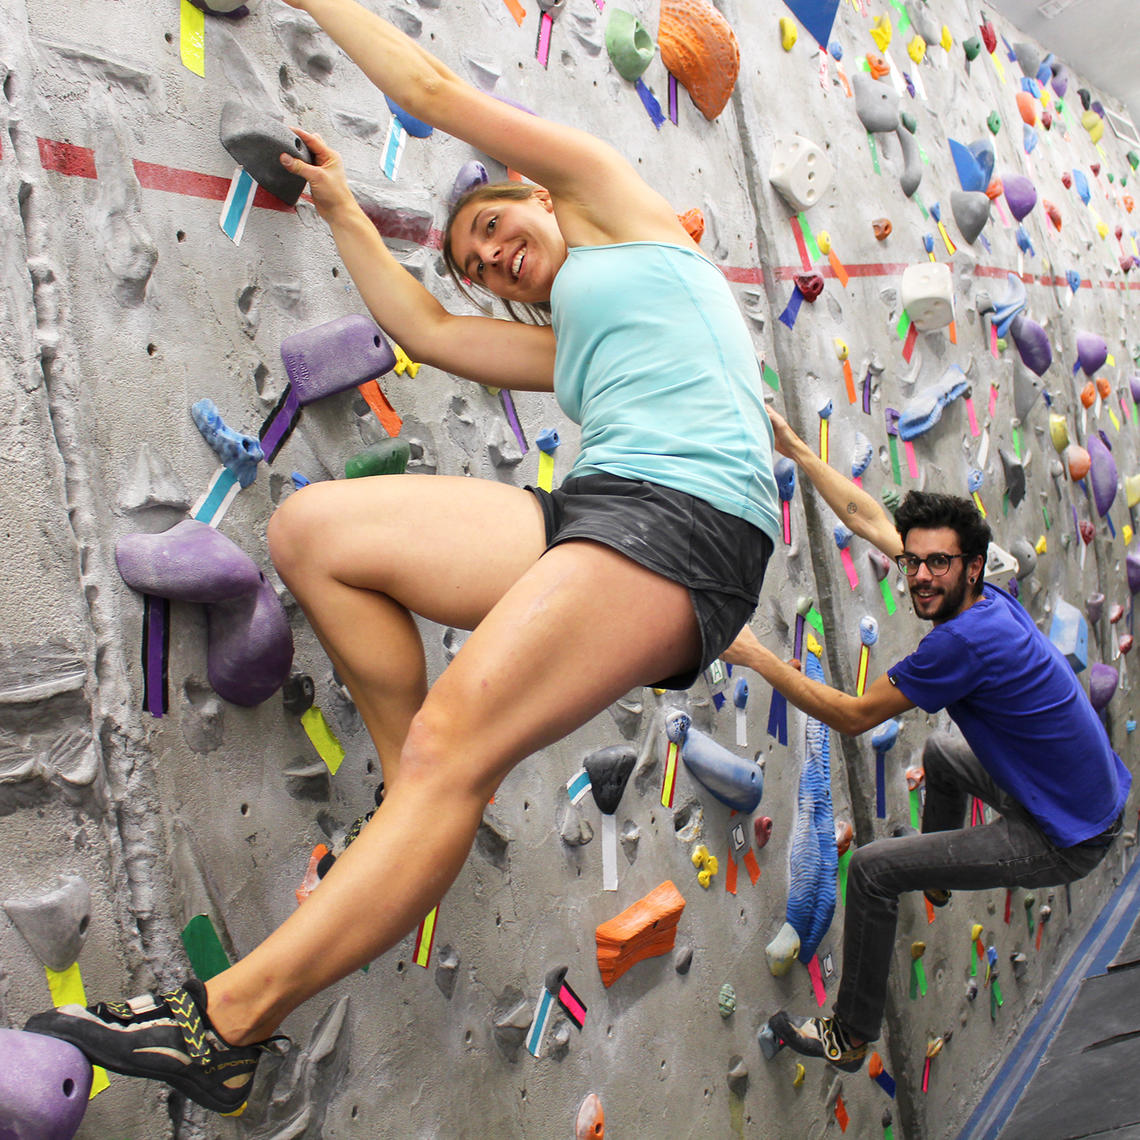 young woman climbing on bouldering wall